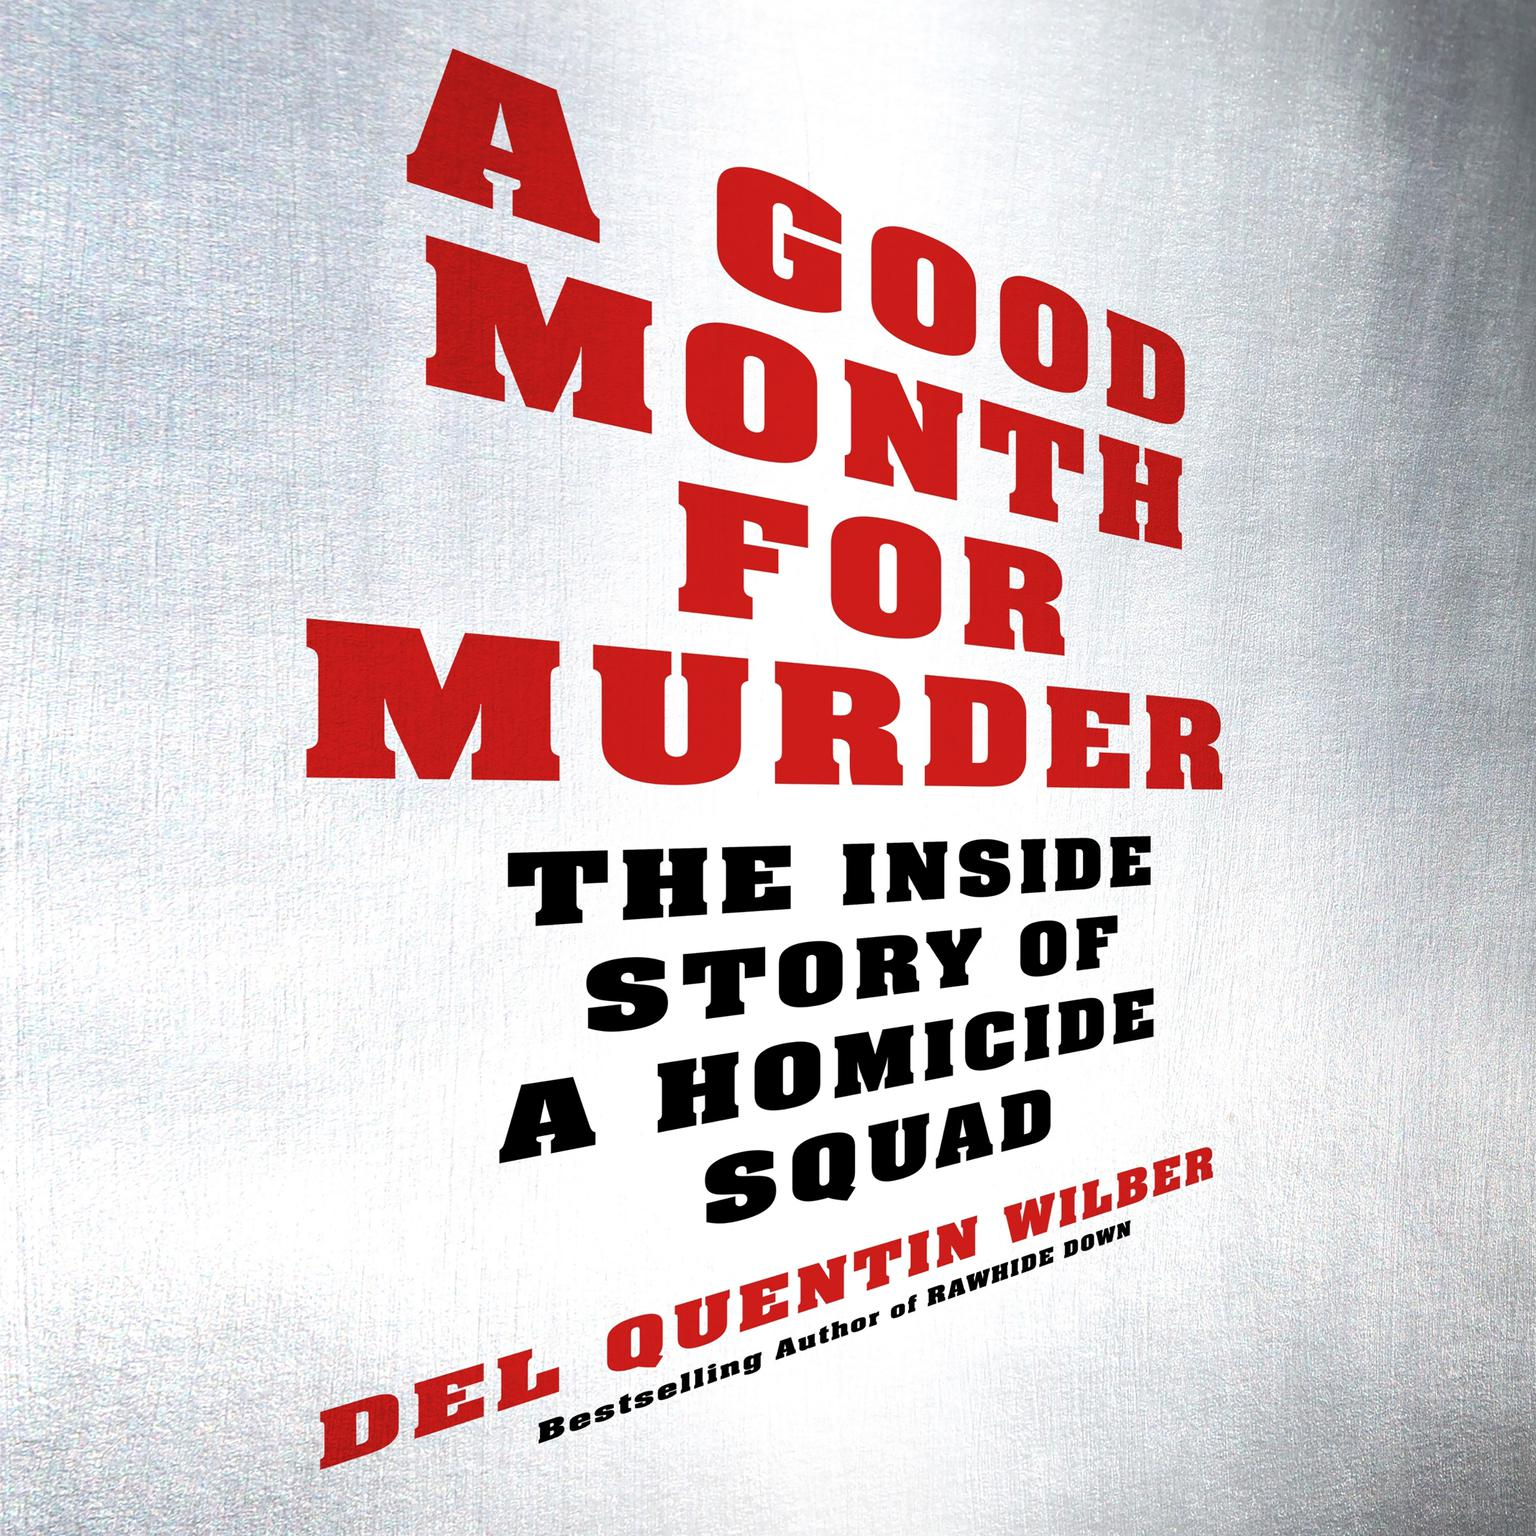 Printable A Good Month for Murder: The Inside Story of a Homicide Squad Audiobook Cover Art